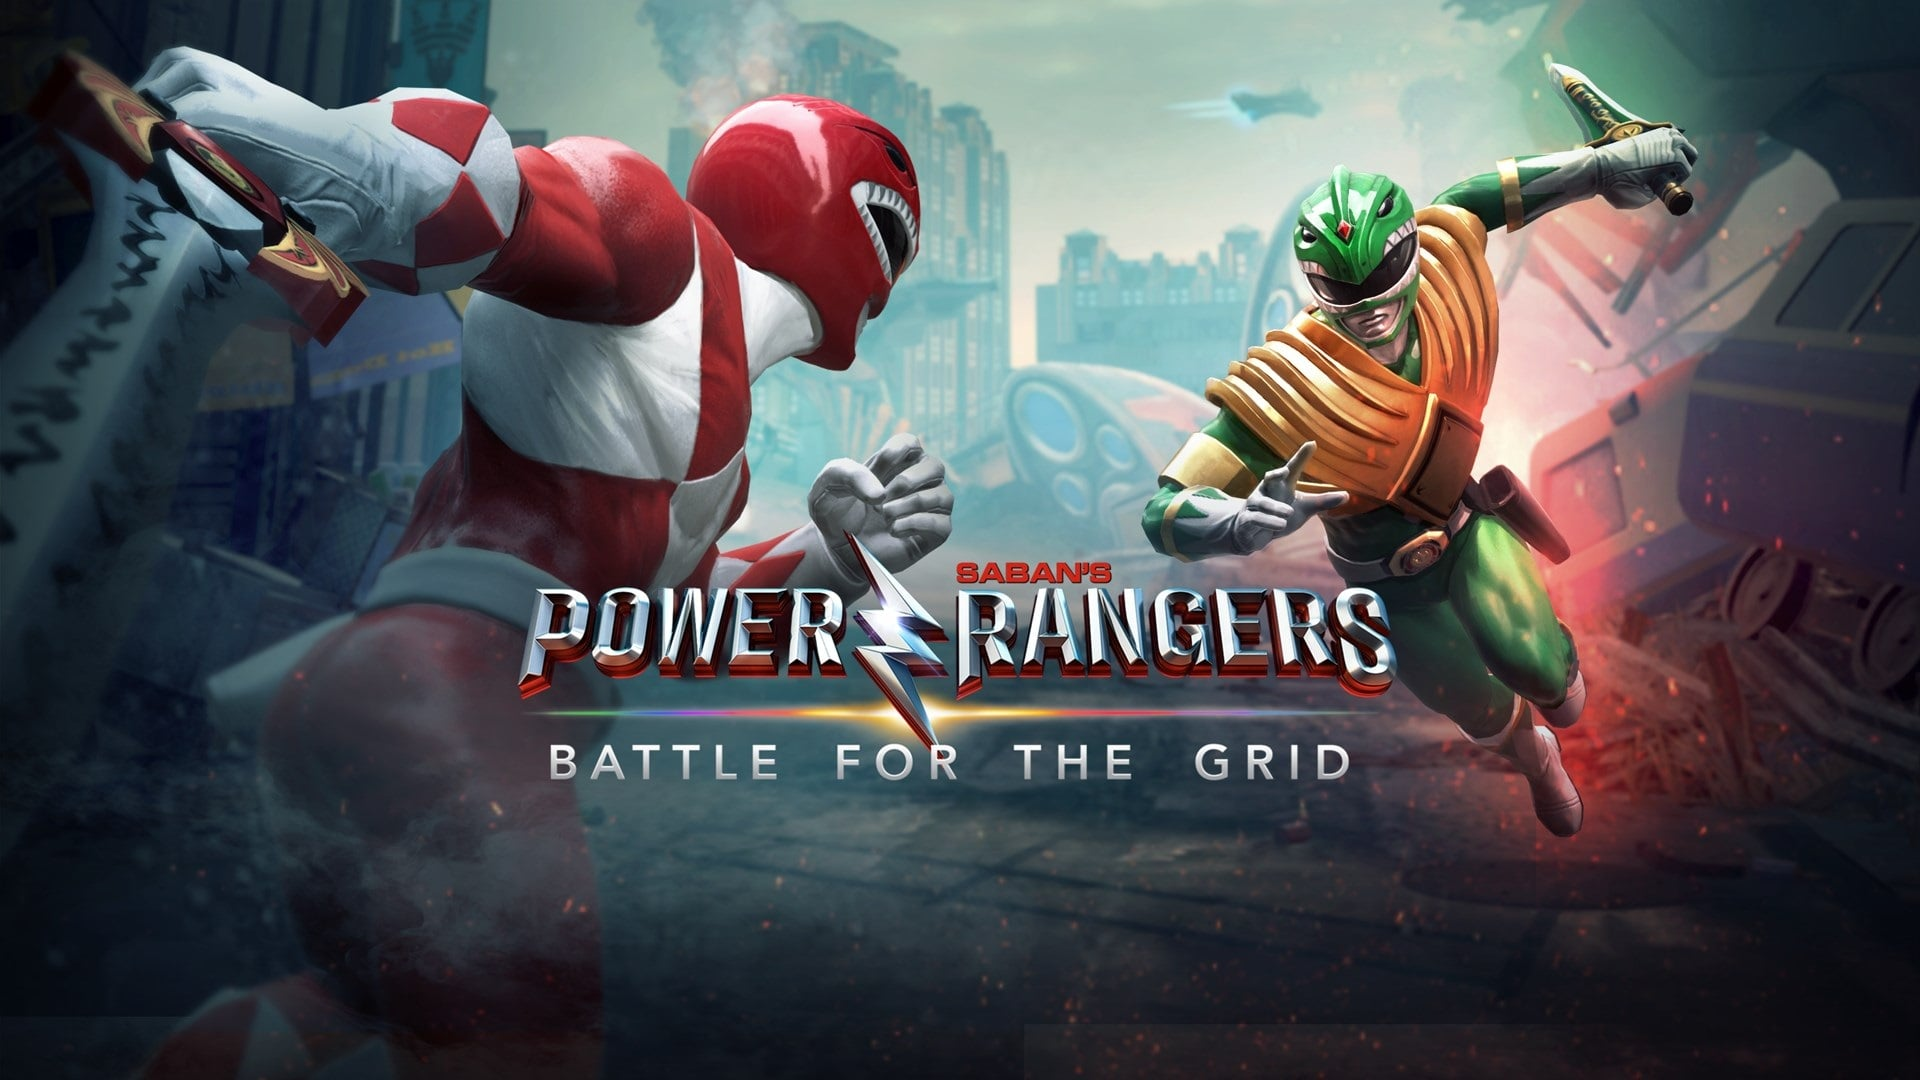 Play Out Your Dream Ranger Battles In Power Rangers Battle For The